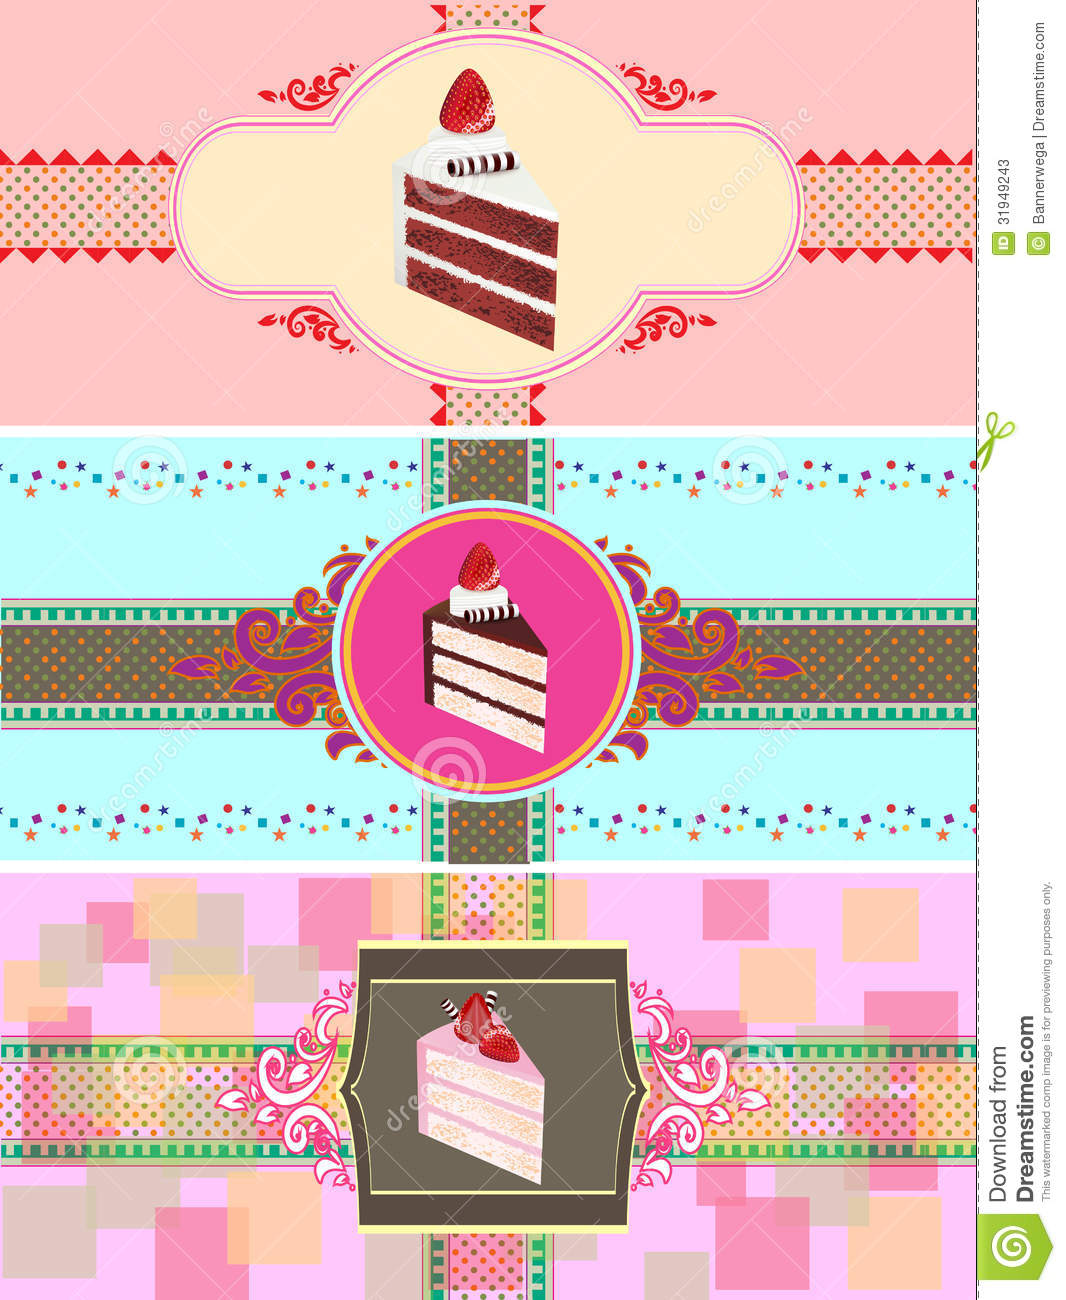 Cake Business Card Template Business Card Sample - Cake business card template